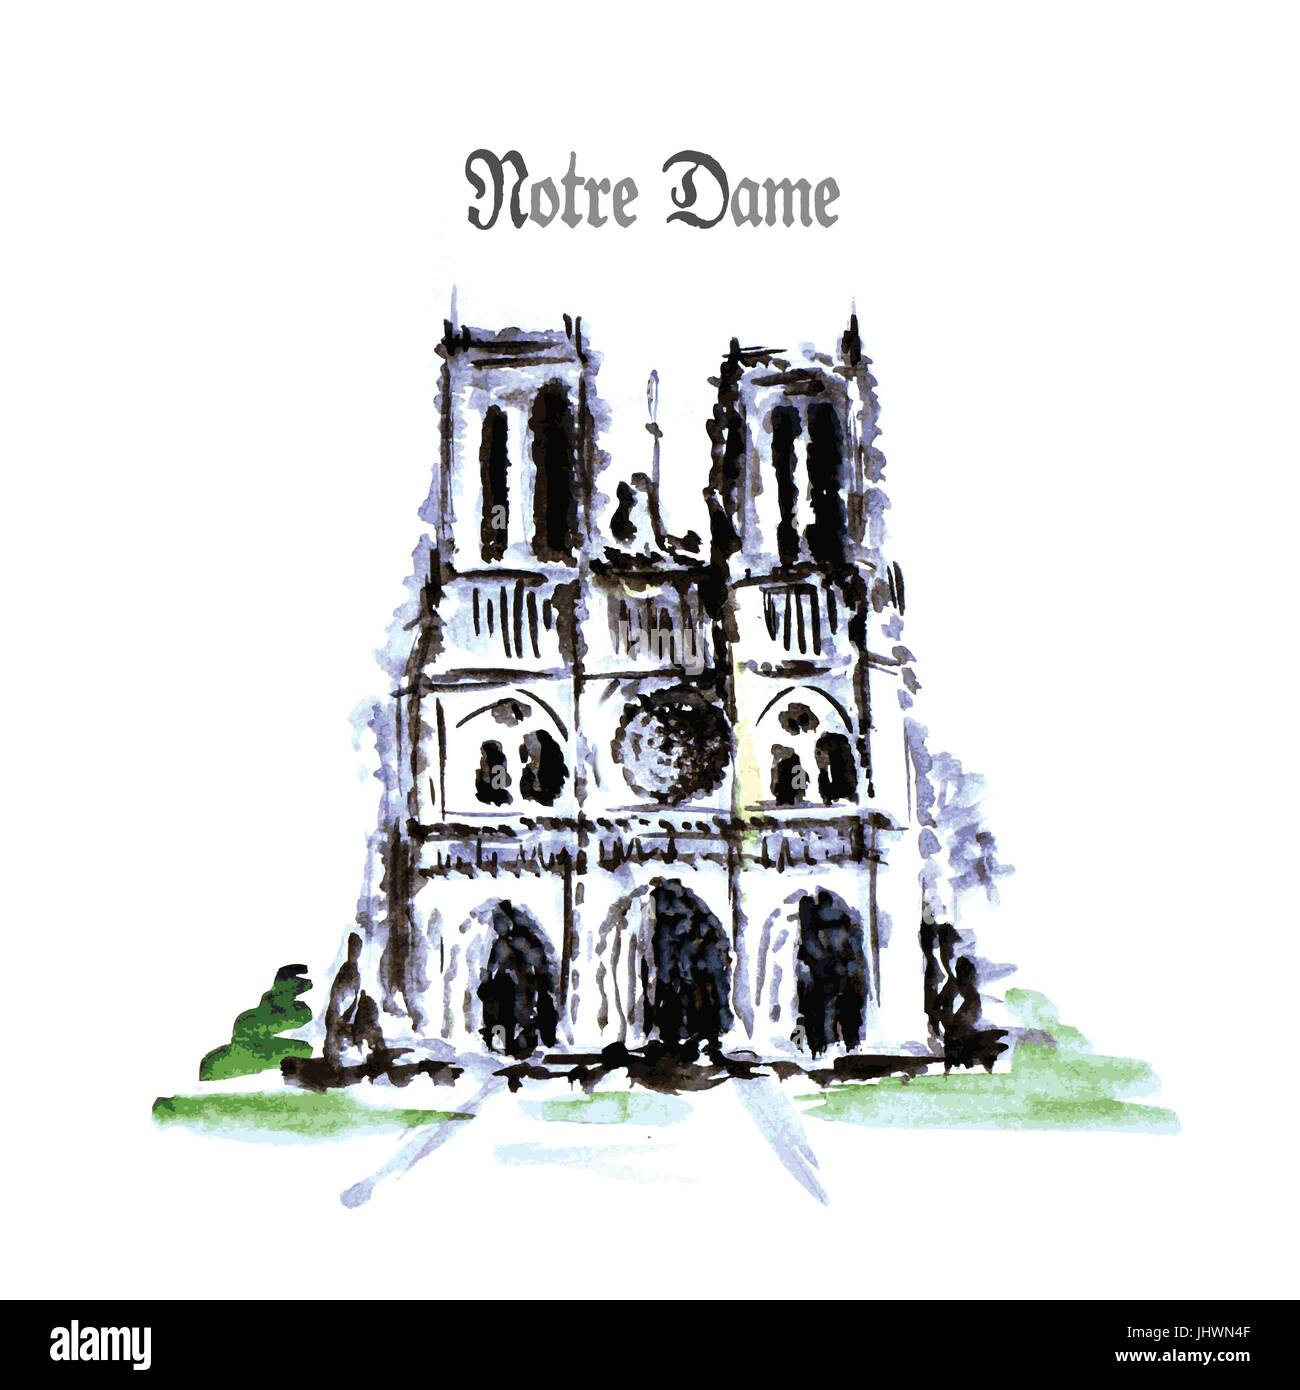 Notre Dame de Paris Cathedral, France. Watercolor hand drawing. - Stock Image